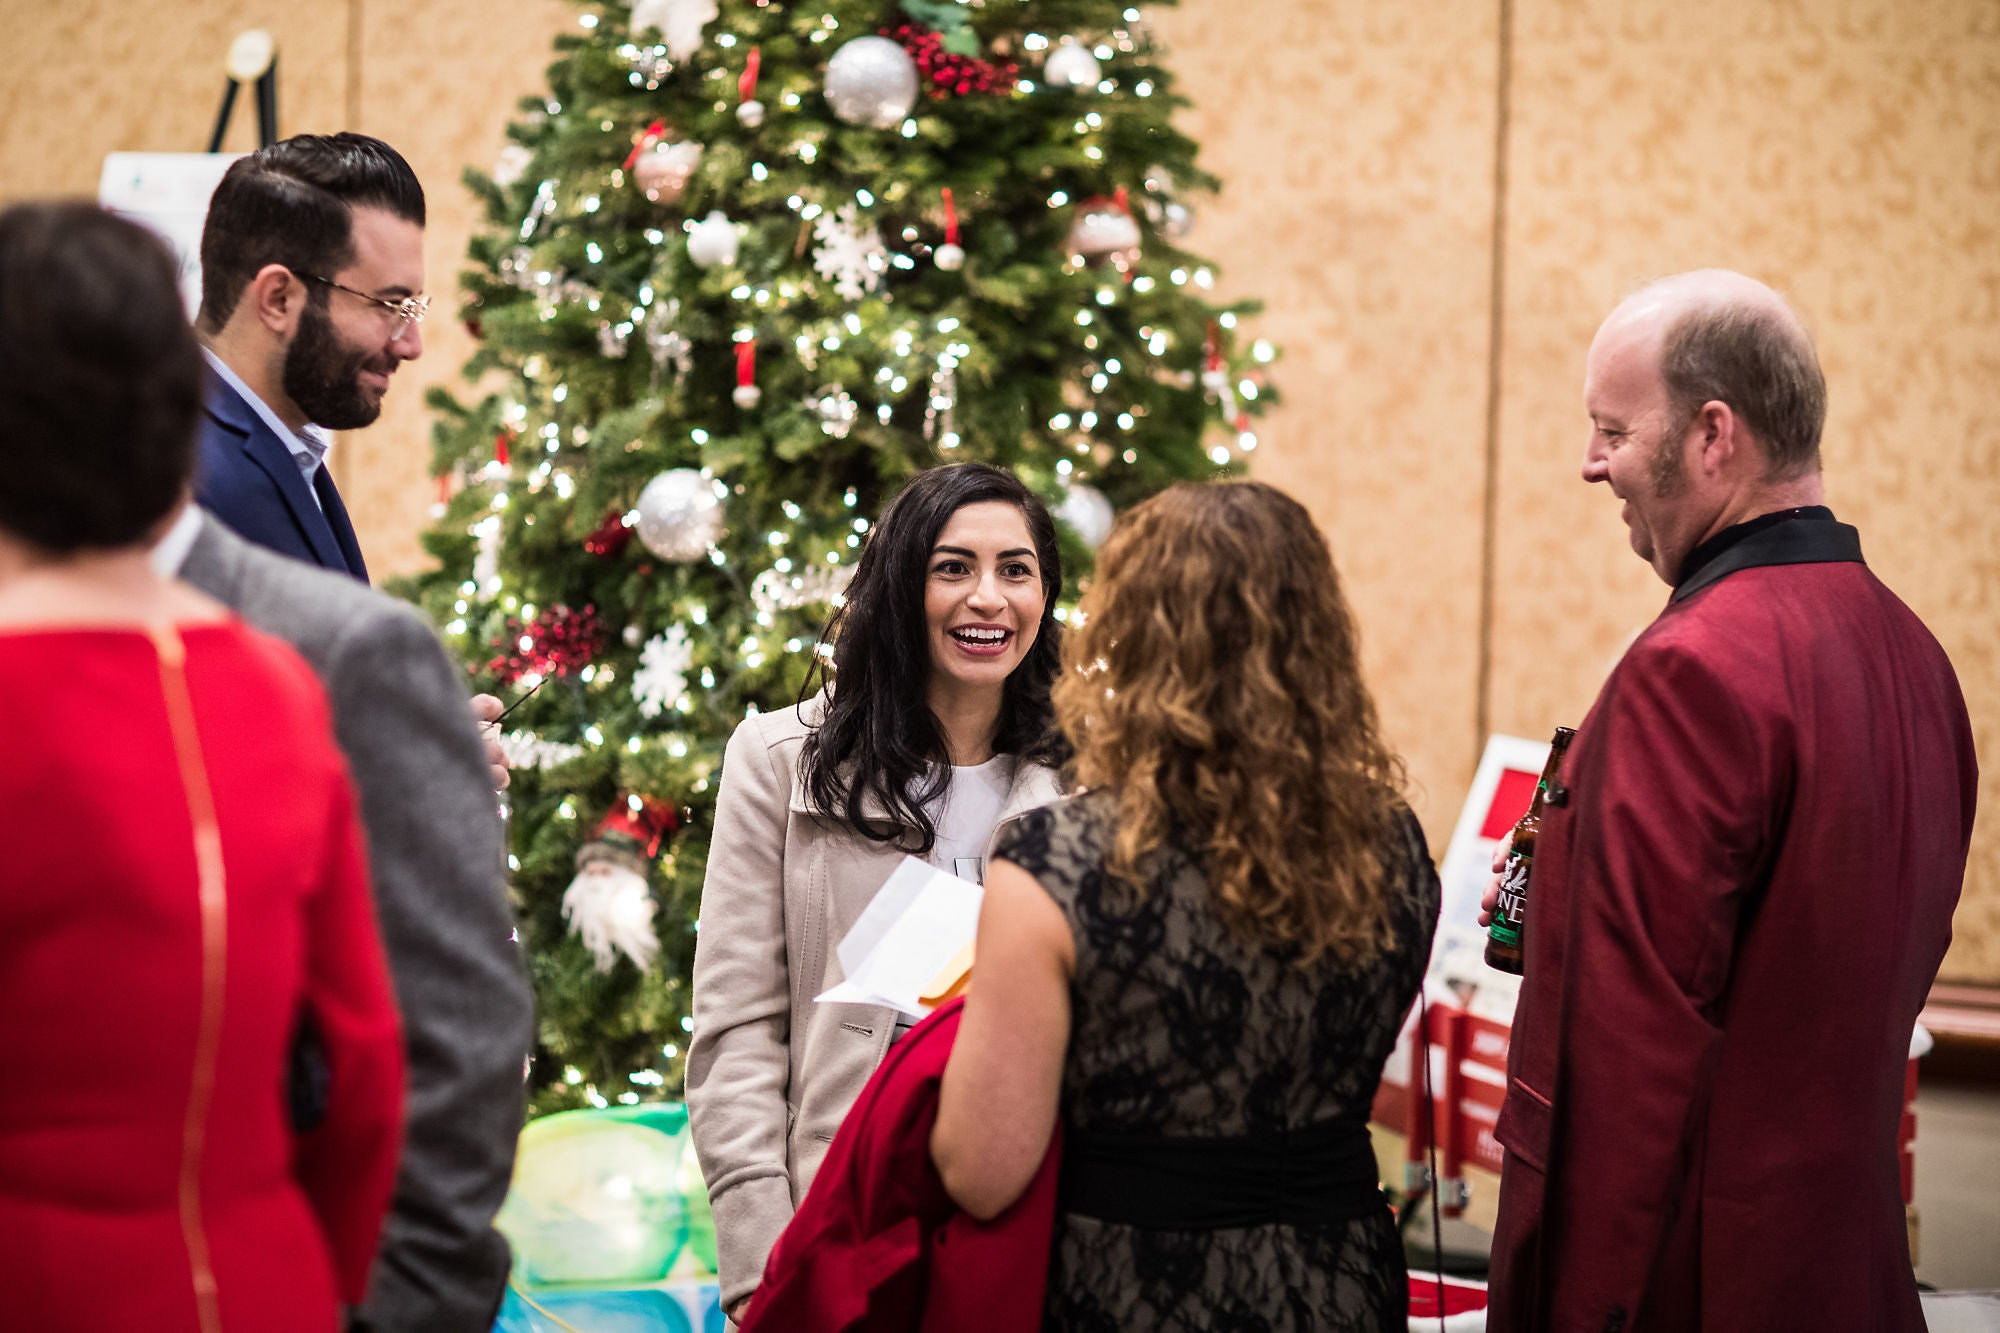 Four people conversing in front of a Christmas tree